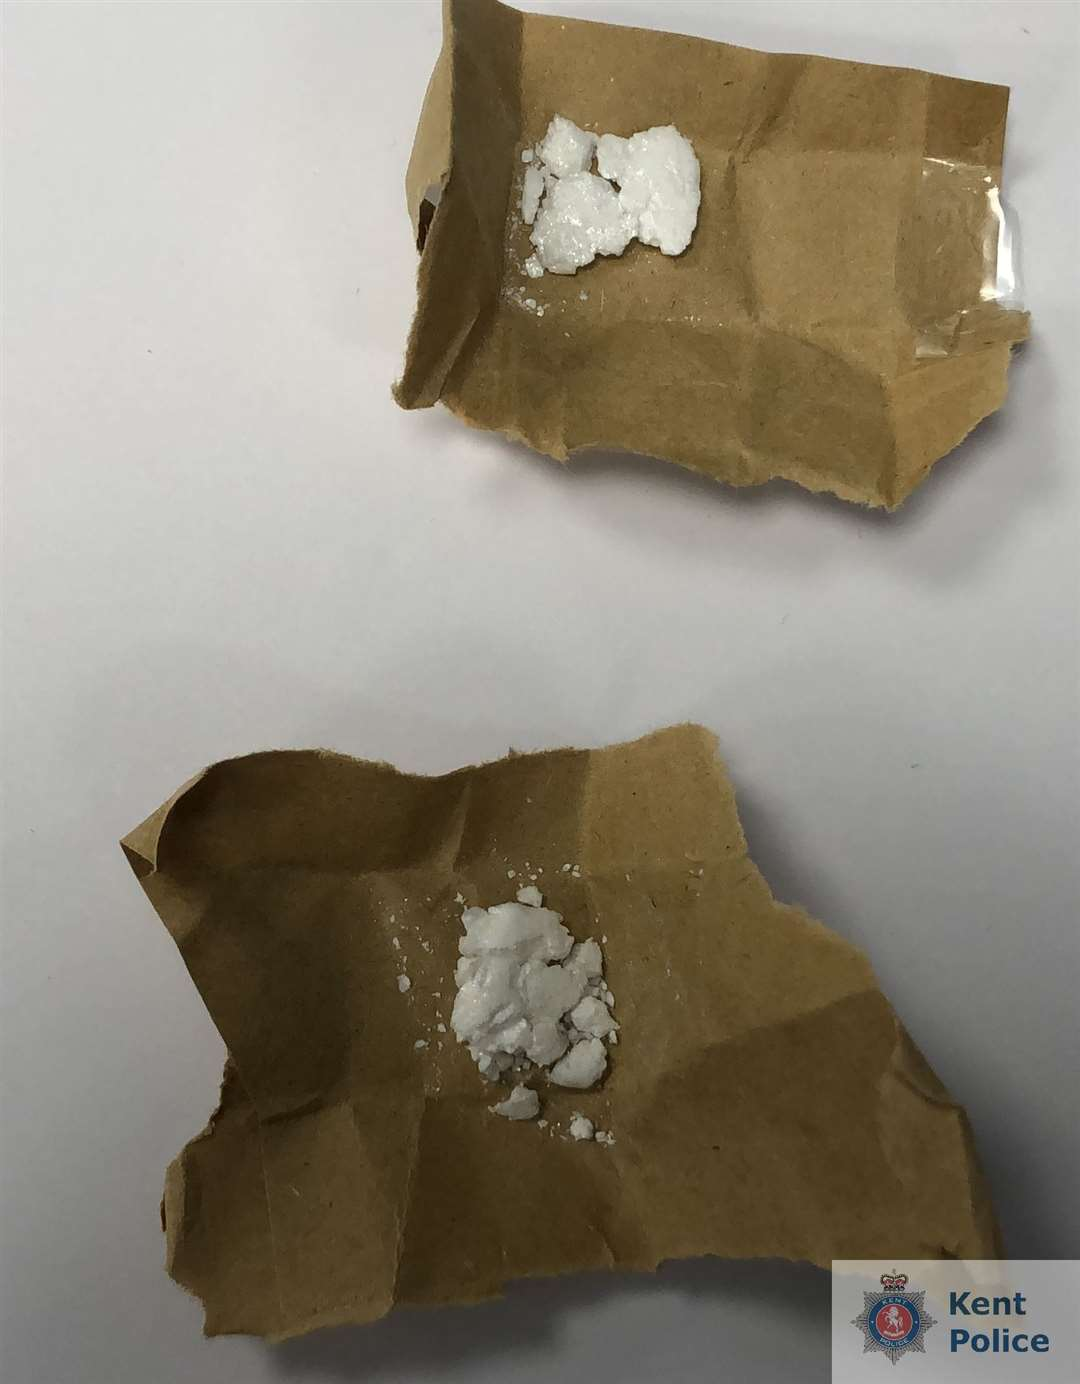 Drugs found by officers (11911400)